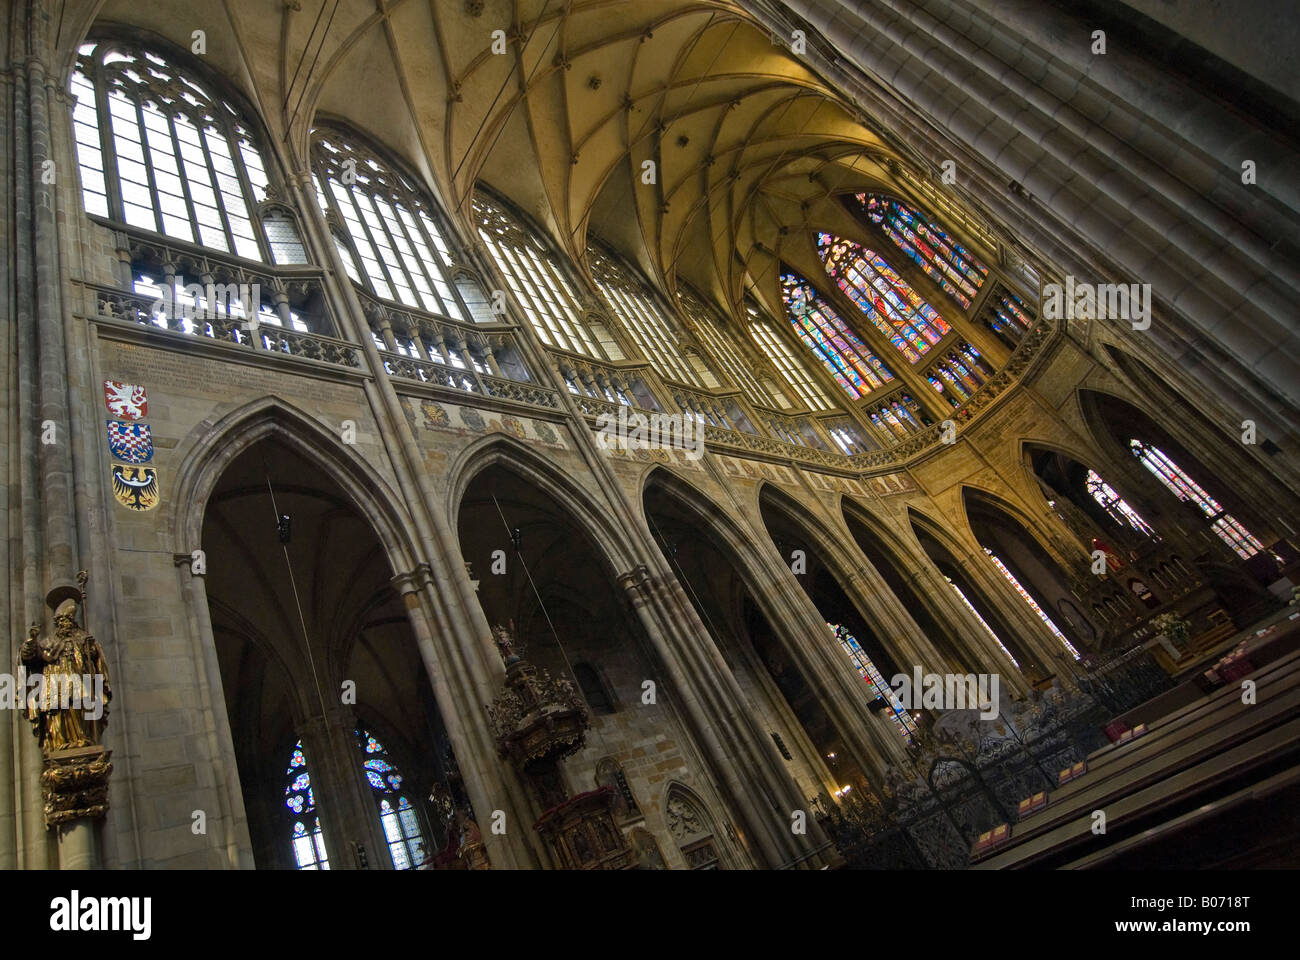 Horizontal abstract wide angle of the altar and vaulted ceiling inside St Vitus's Cathedral. Stock Photo